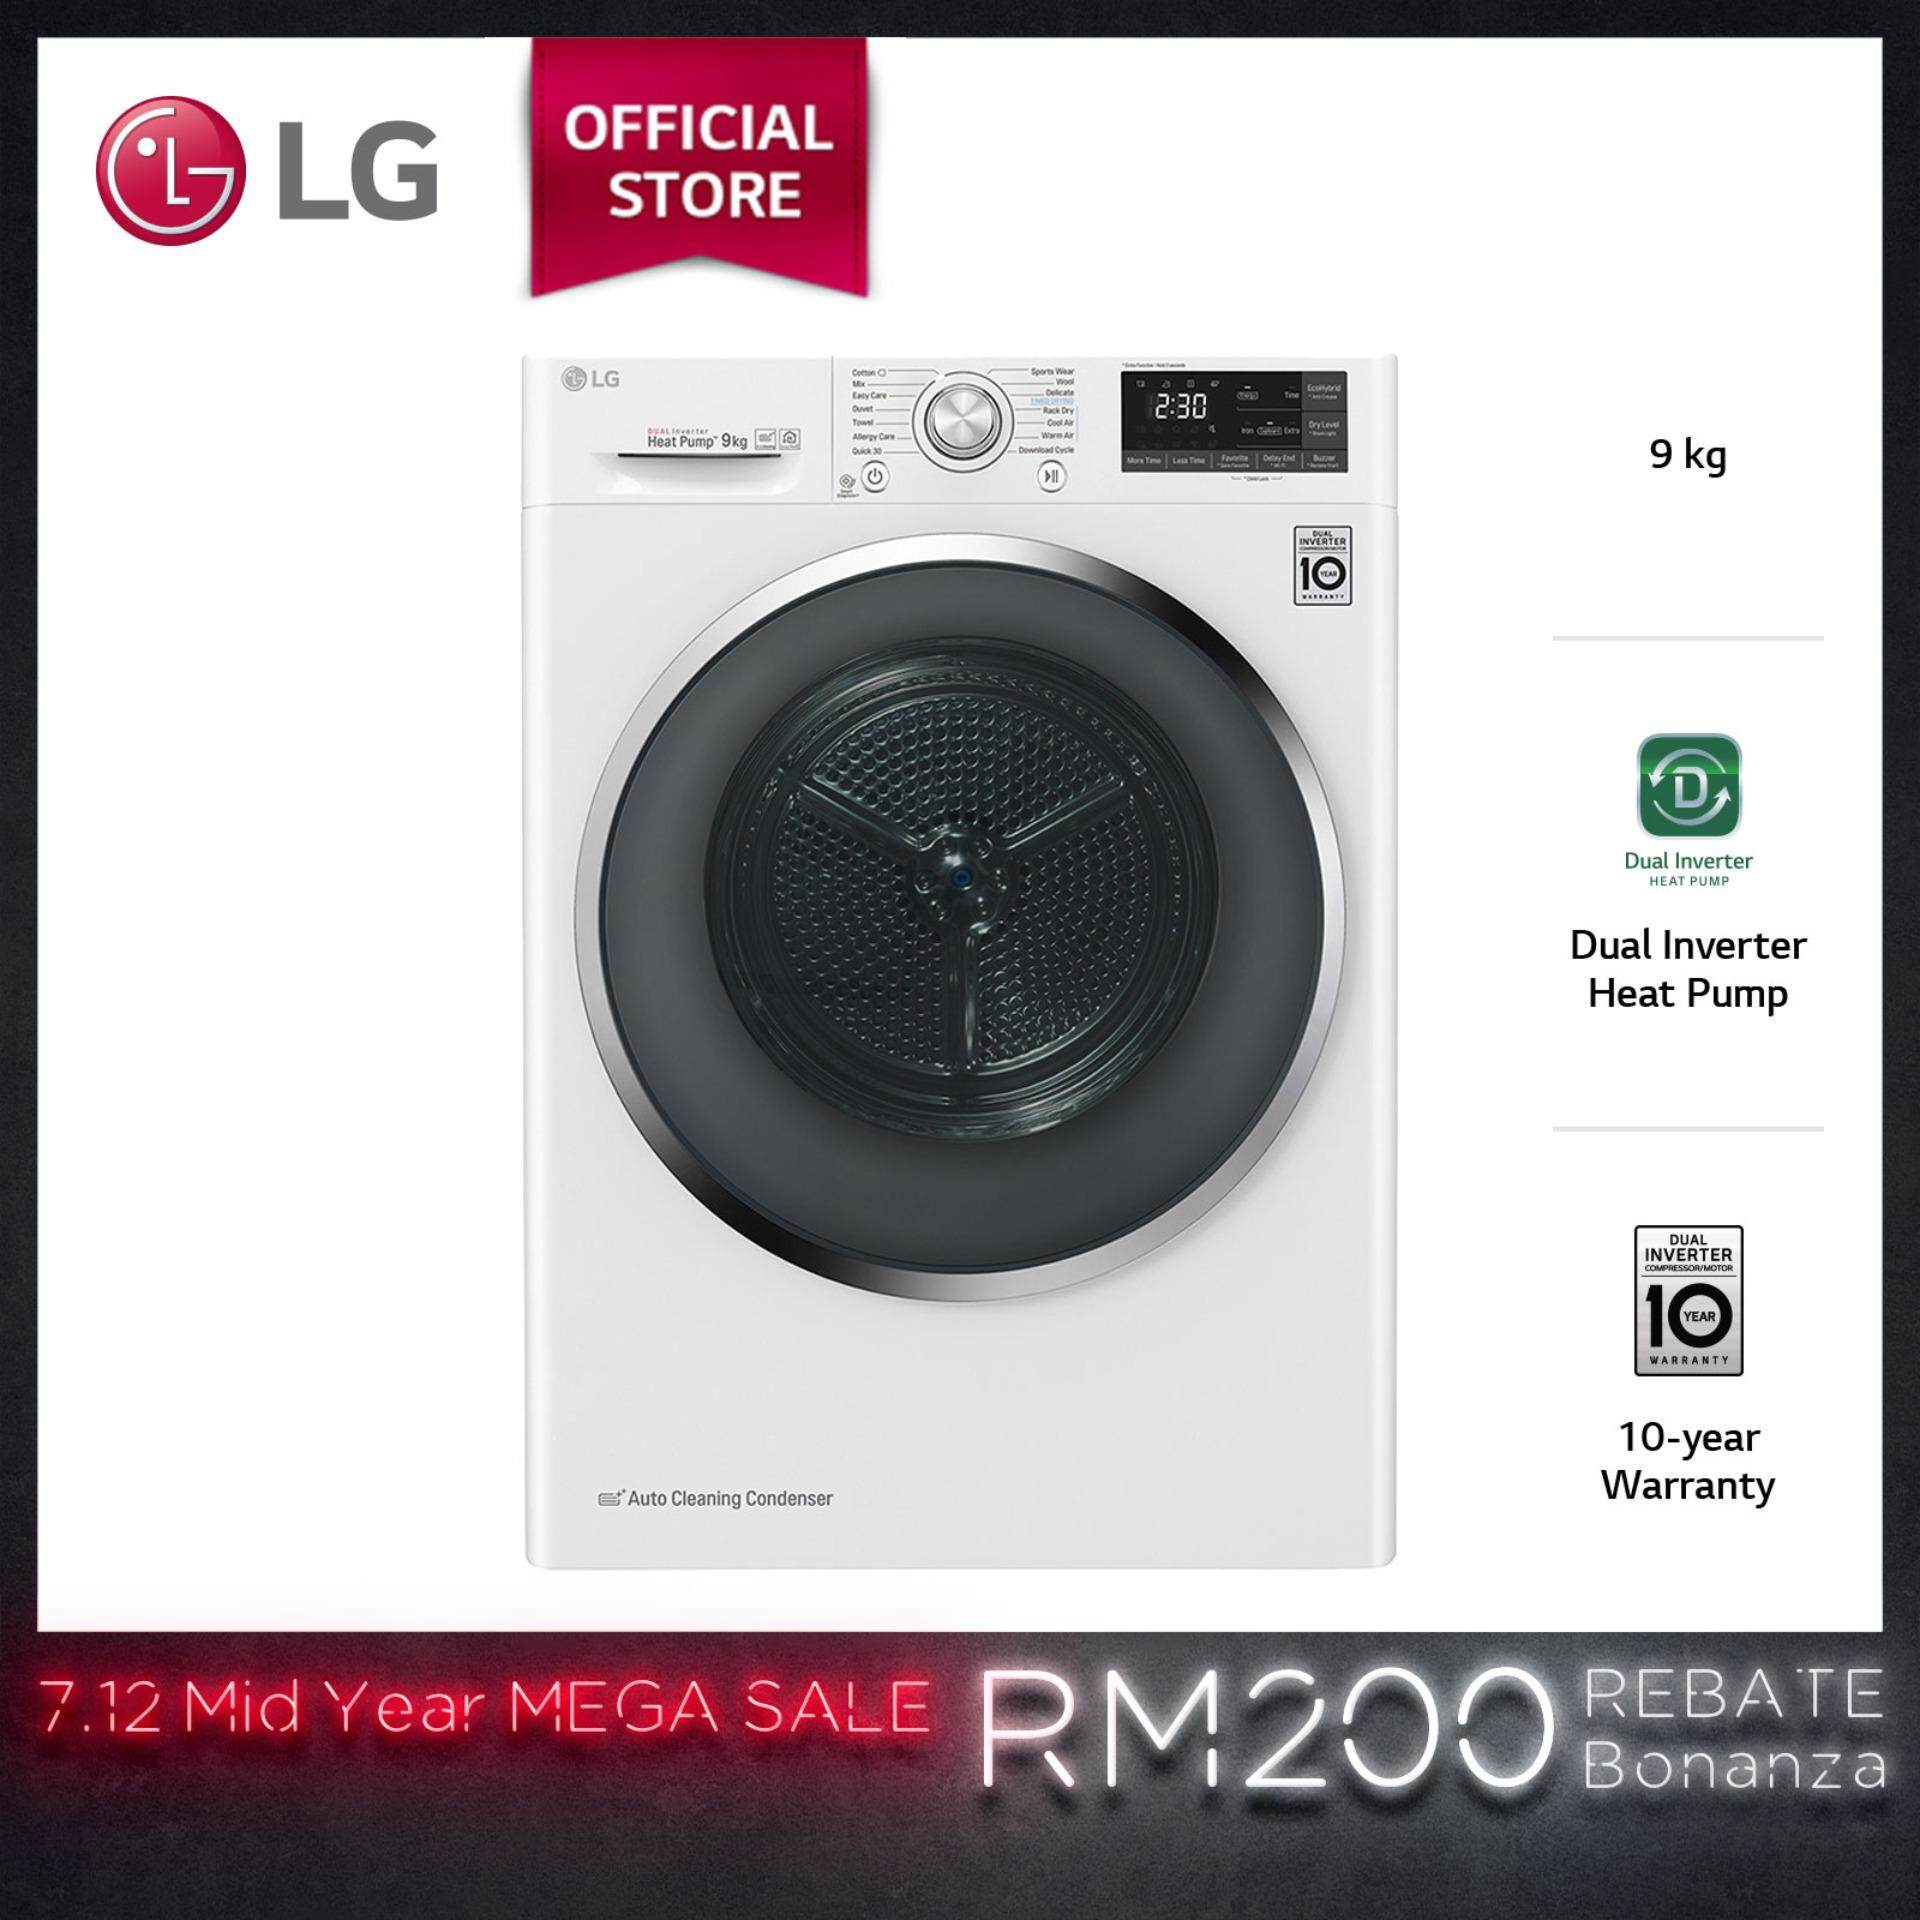 LG,MOVE Pengering Pakaian price in Malaysia - Best LG,MOVE Pengering